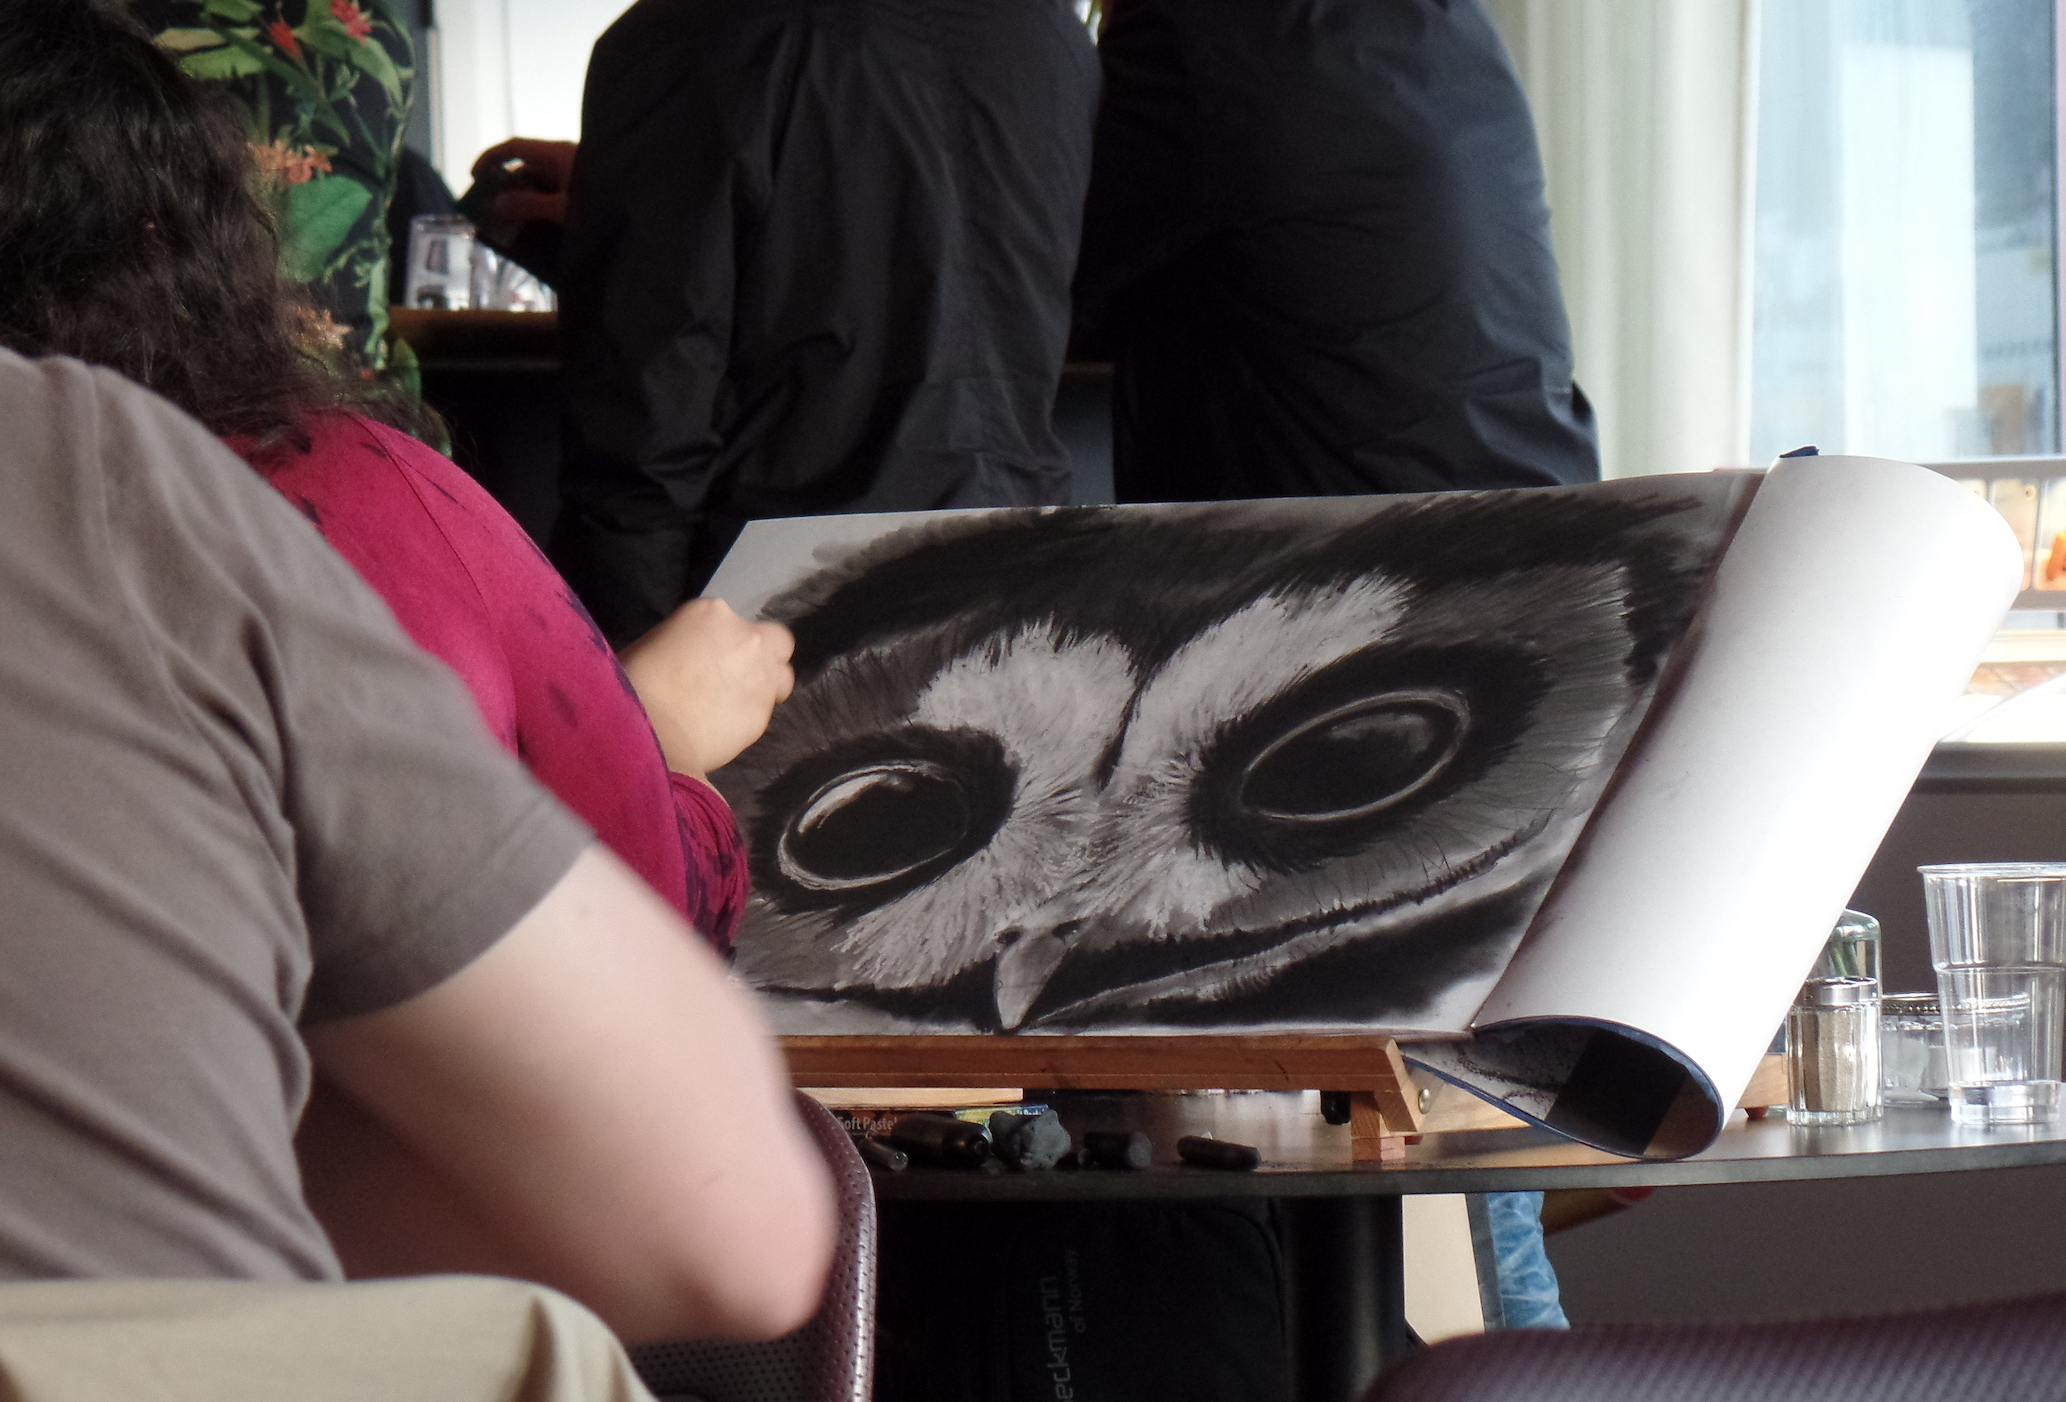 Charcoal drawing of an owl that I bought